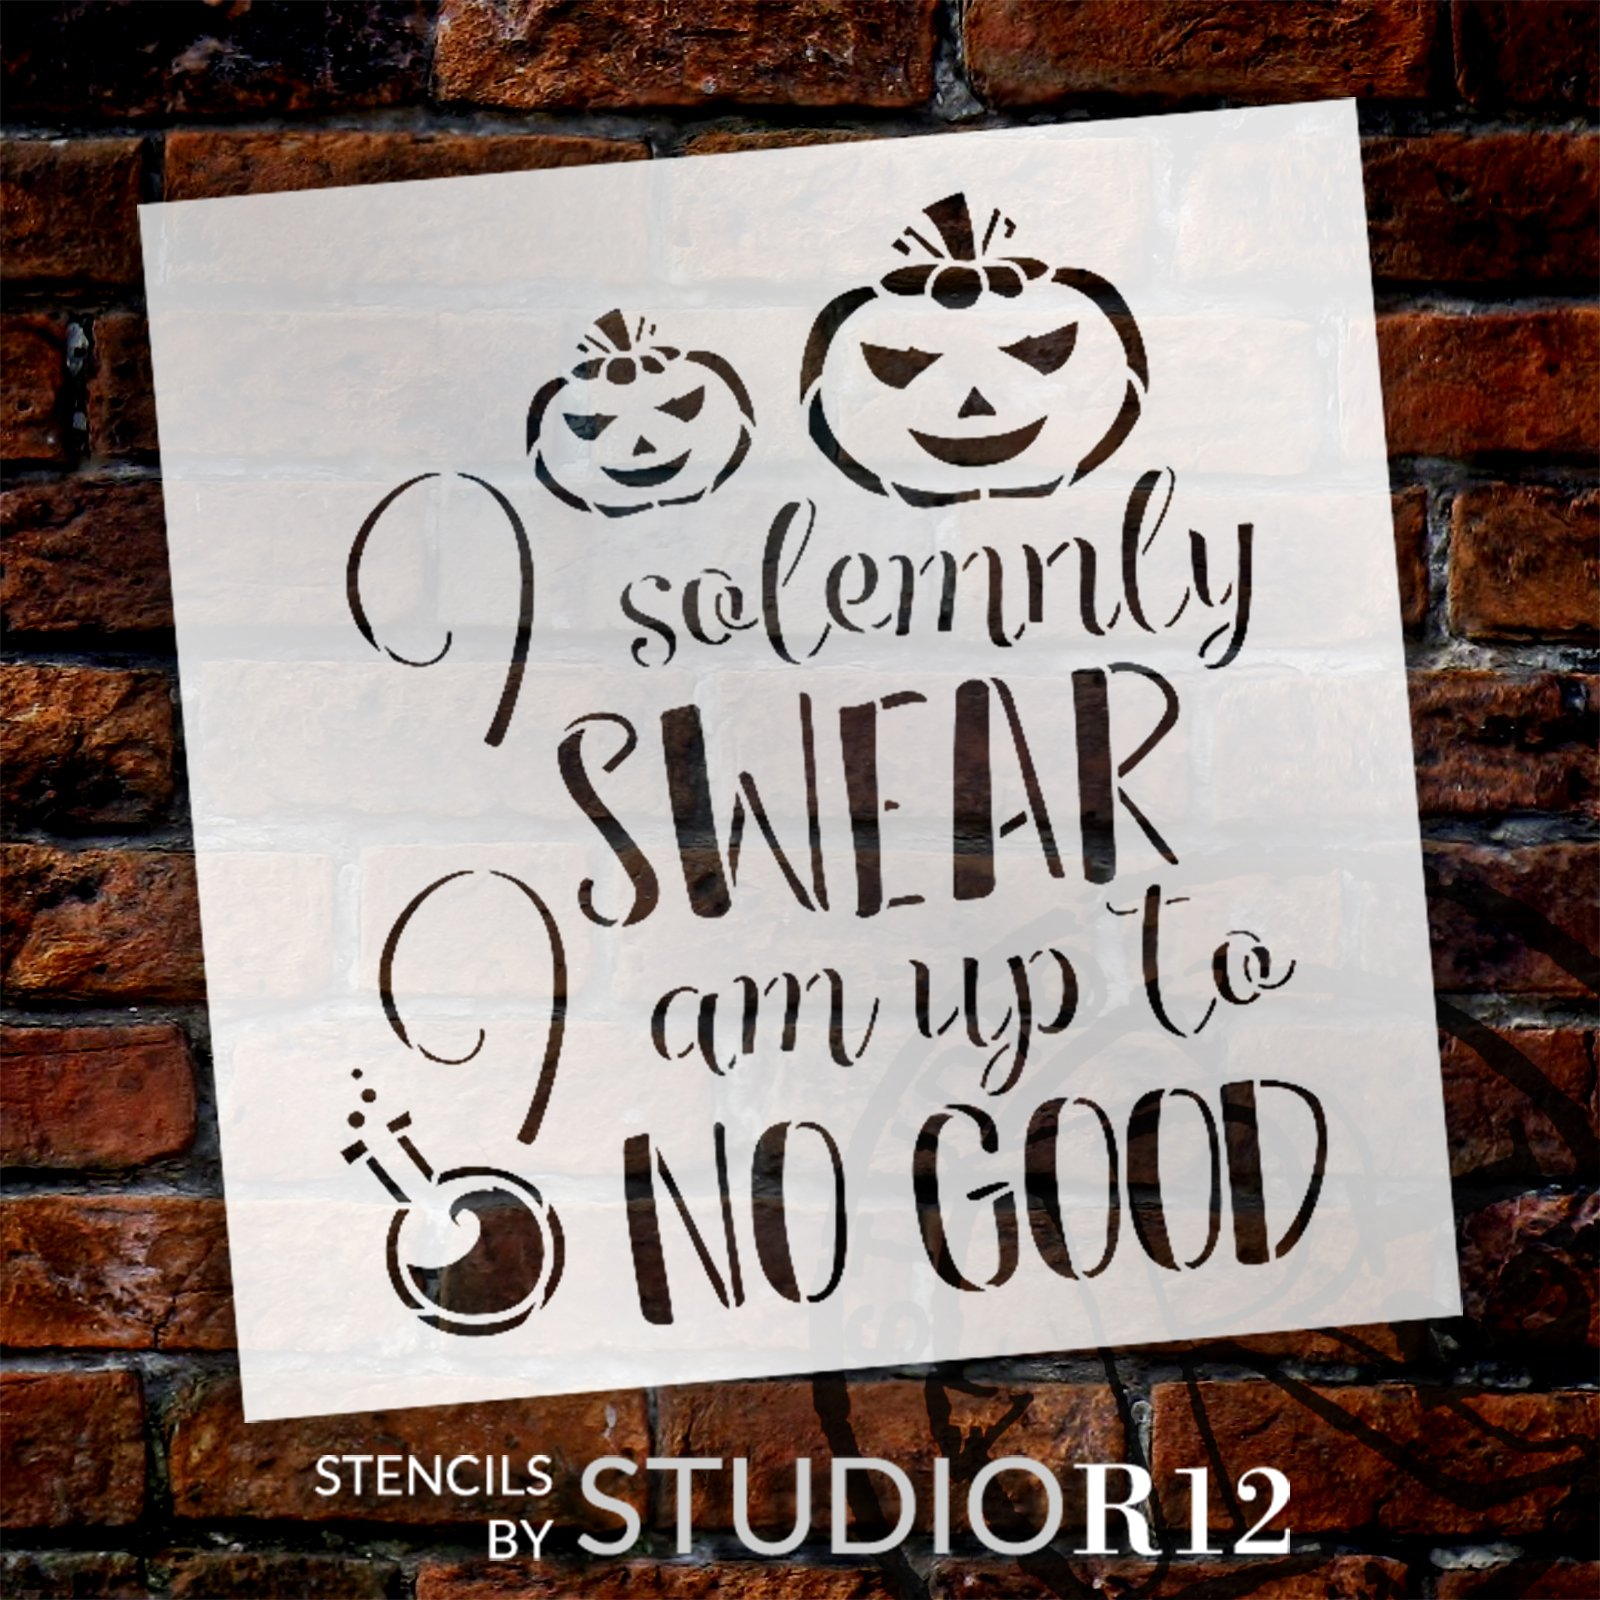 I Solemnly Swear I Am Up to No Good Stencil by StudioR12 | DIY Halloween Decor | Craft & Paint Fall Pumpkin Wood Signs | Select Size